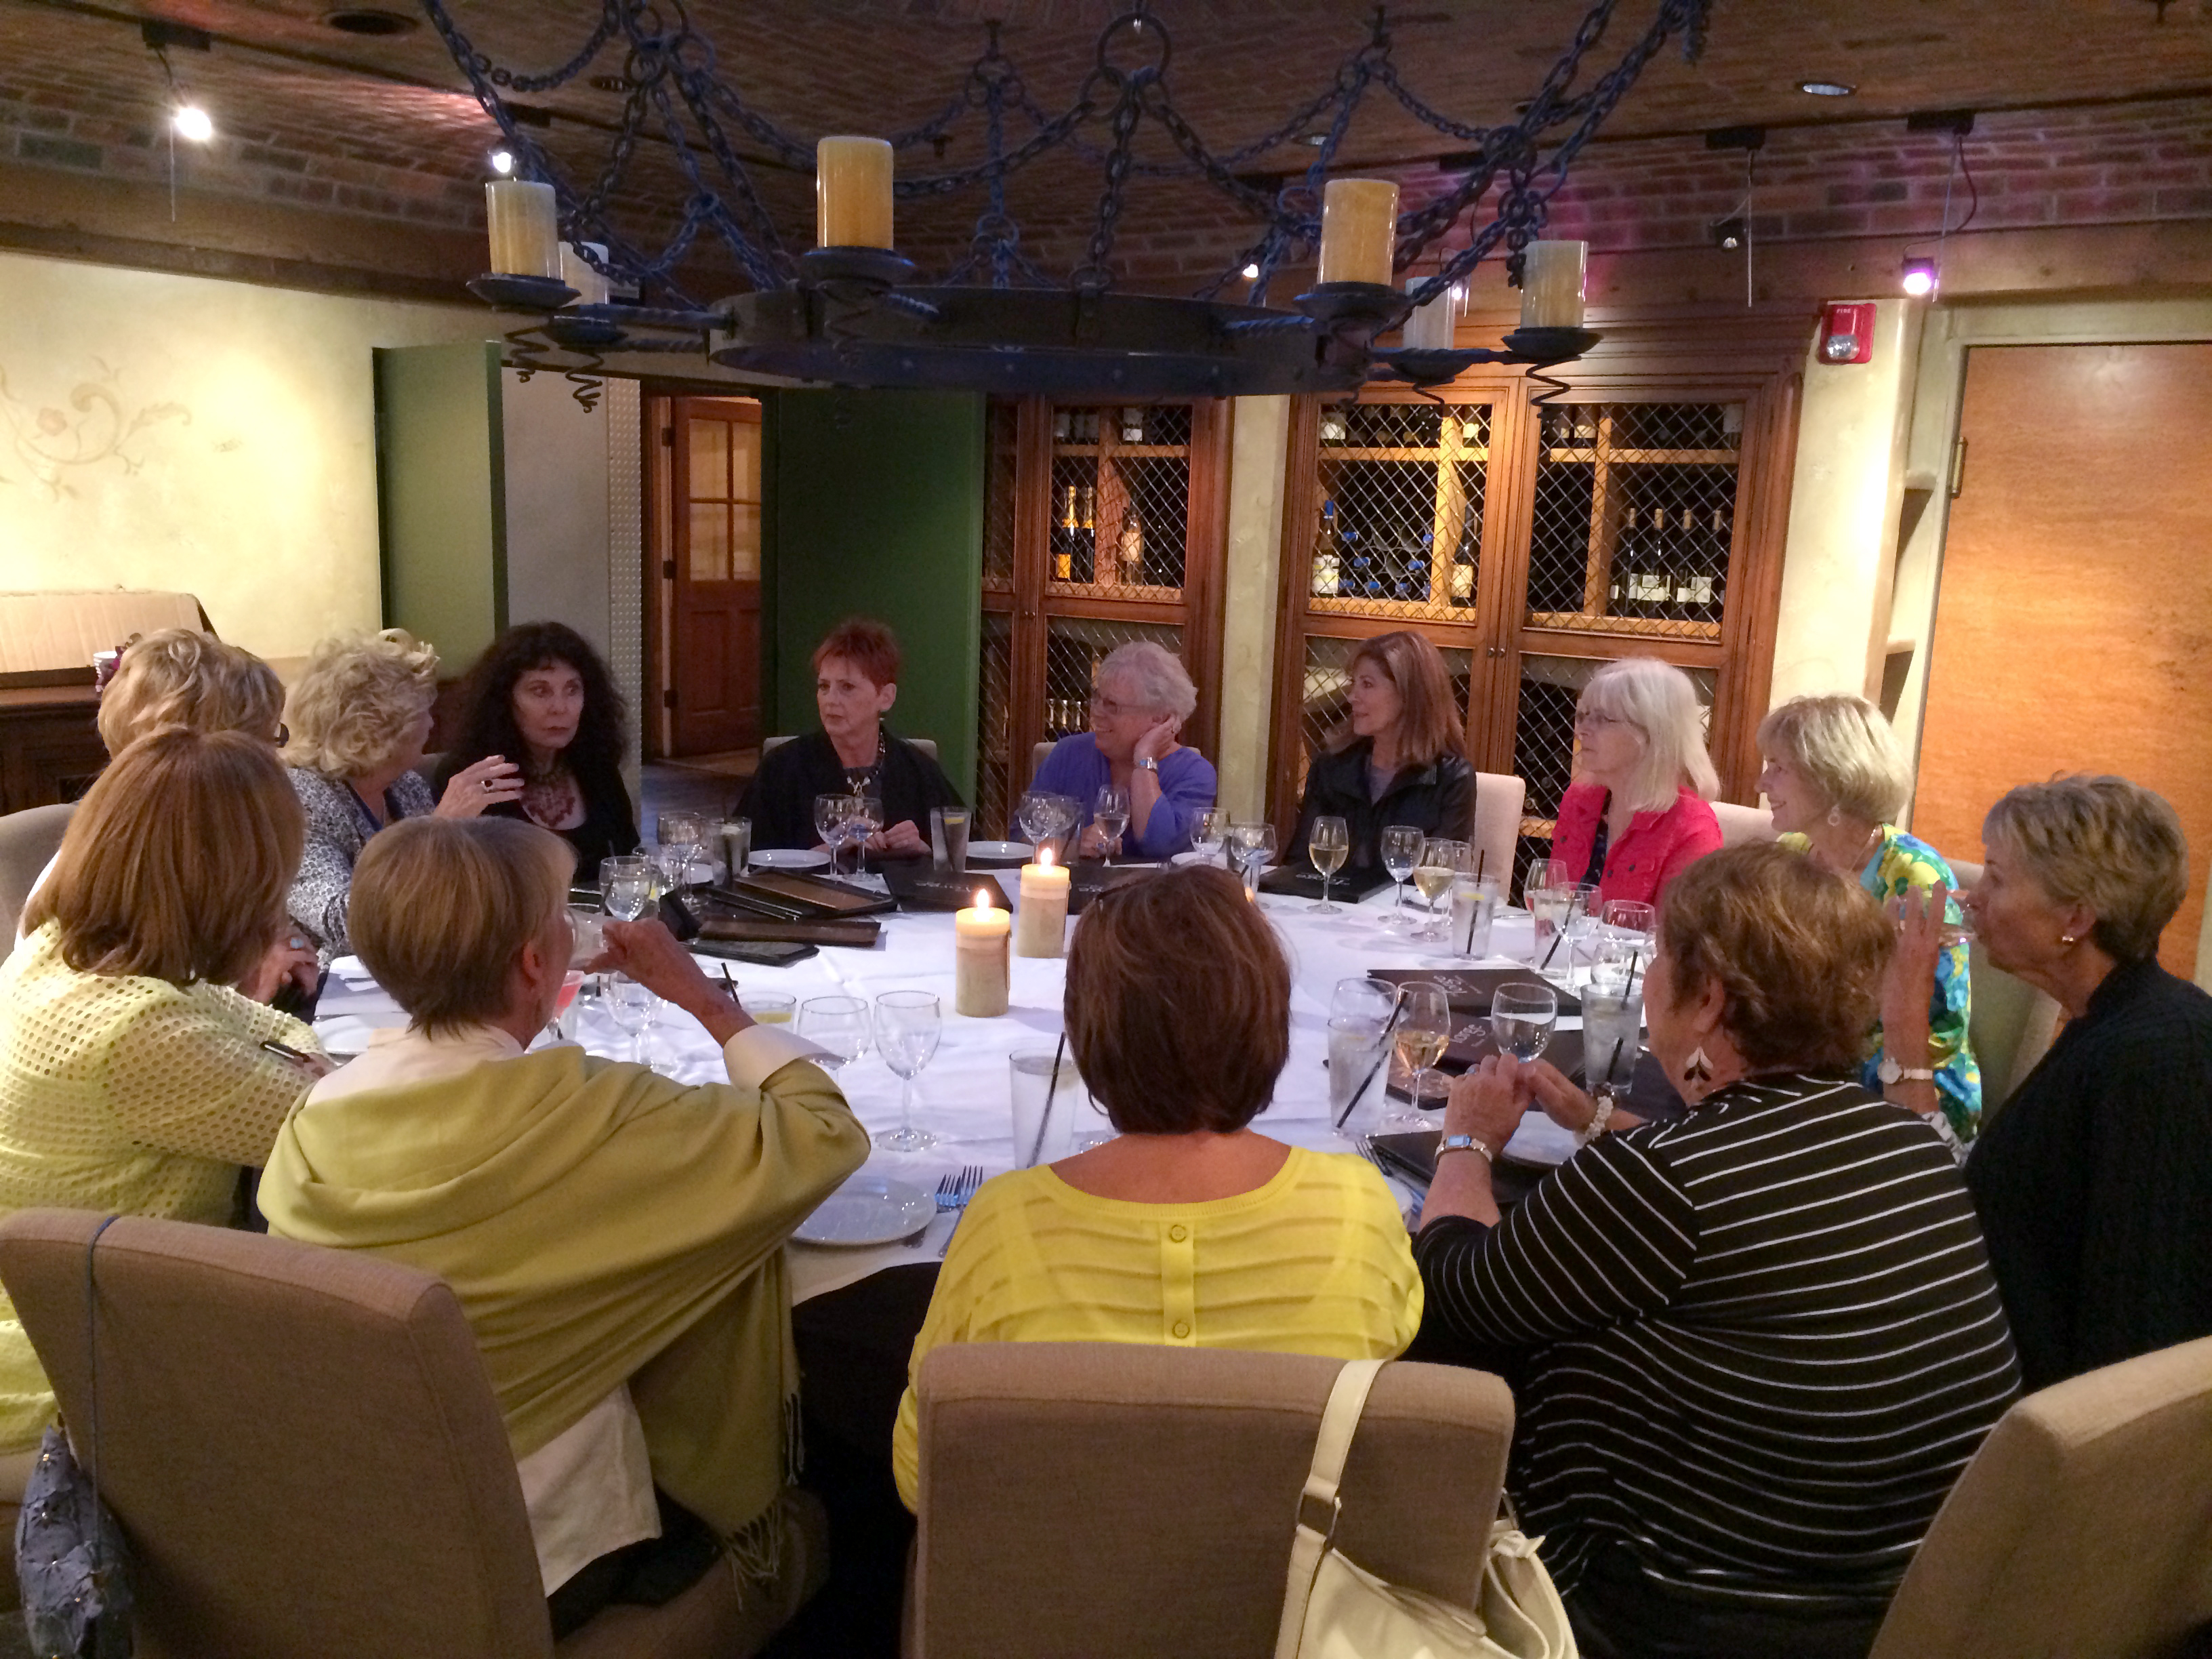 Discusses the whip with the morgan hill amp page turners book club